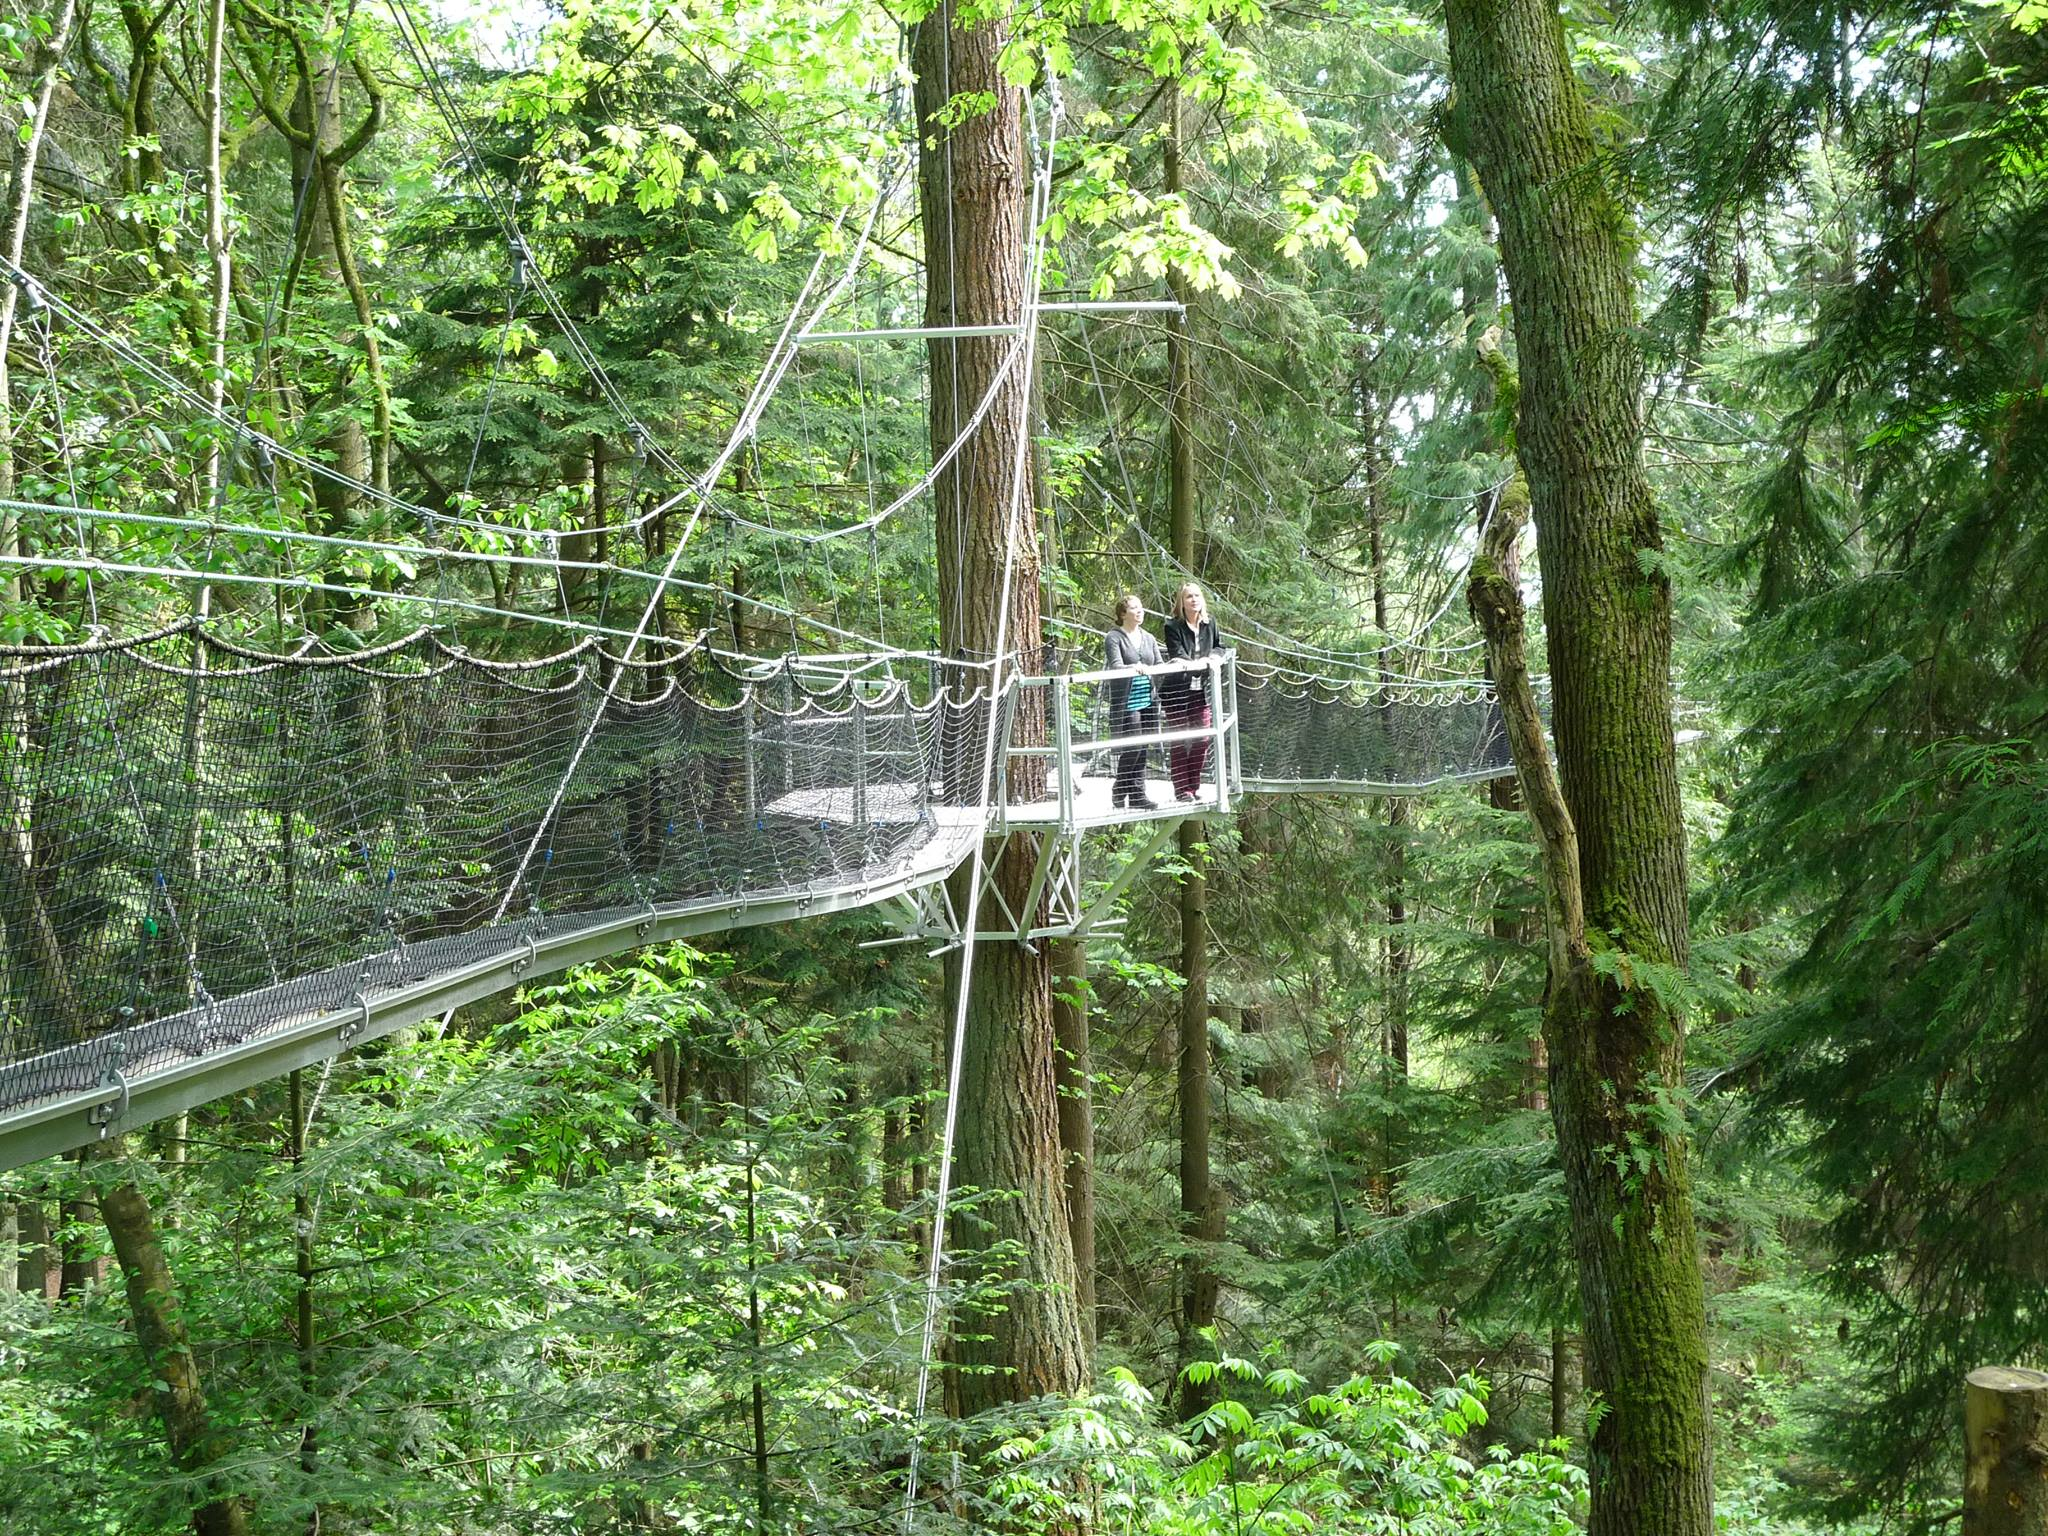 Greenheart treewalk